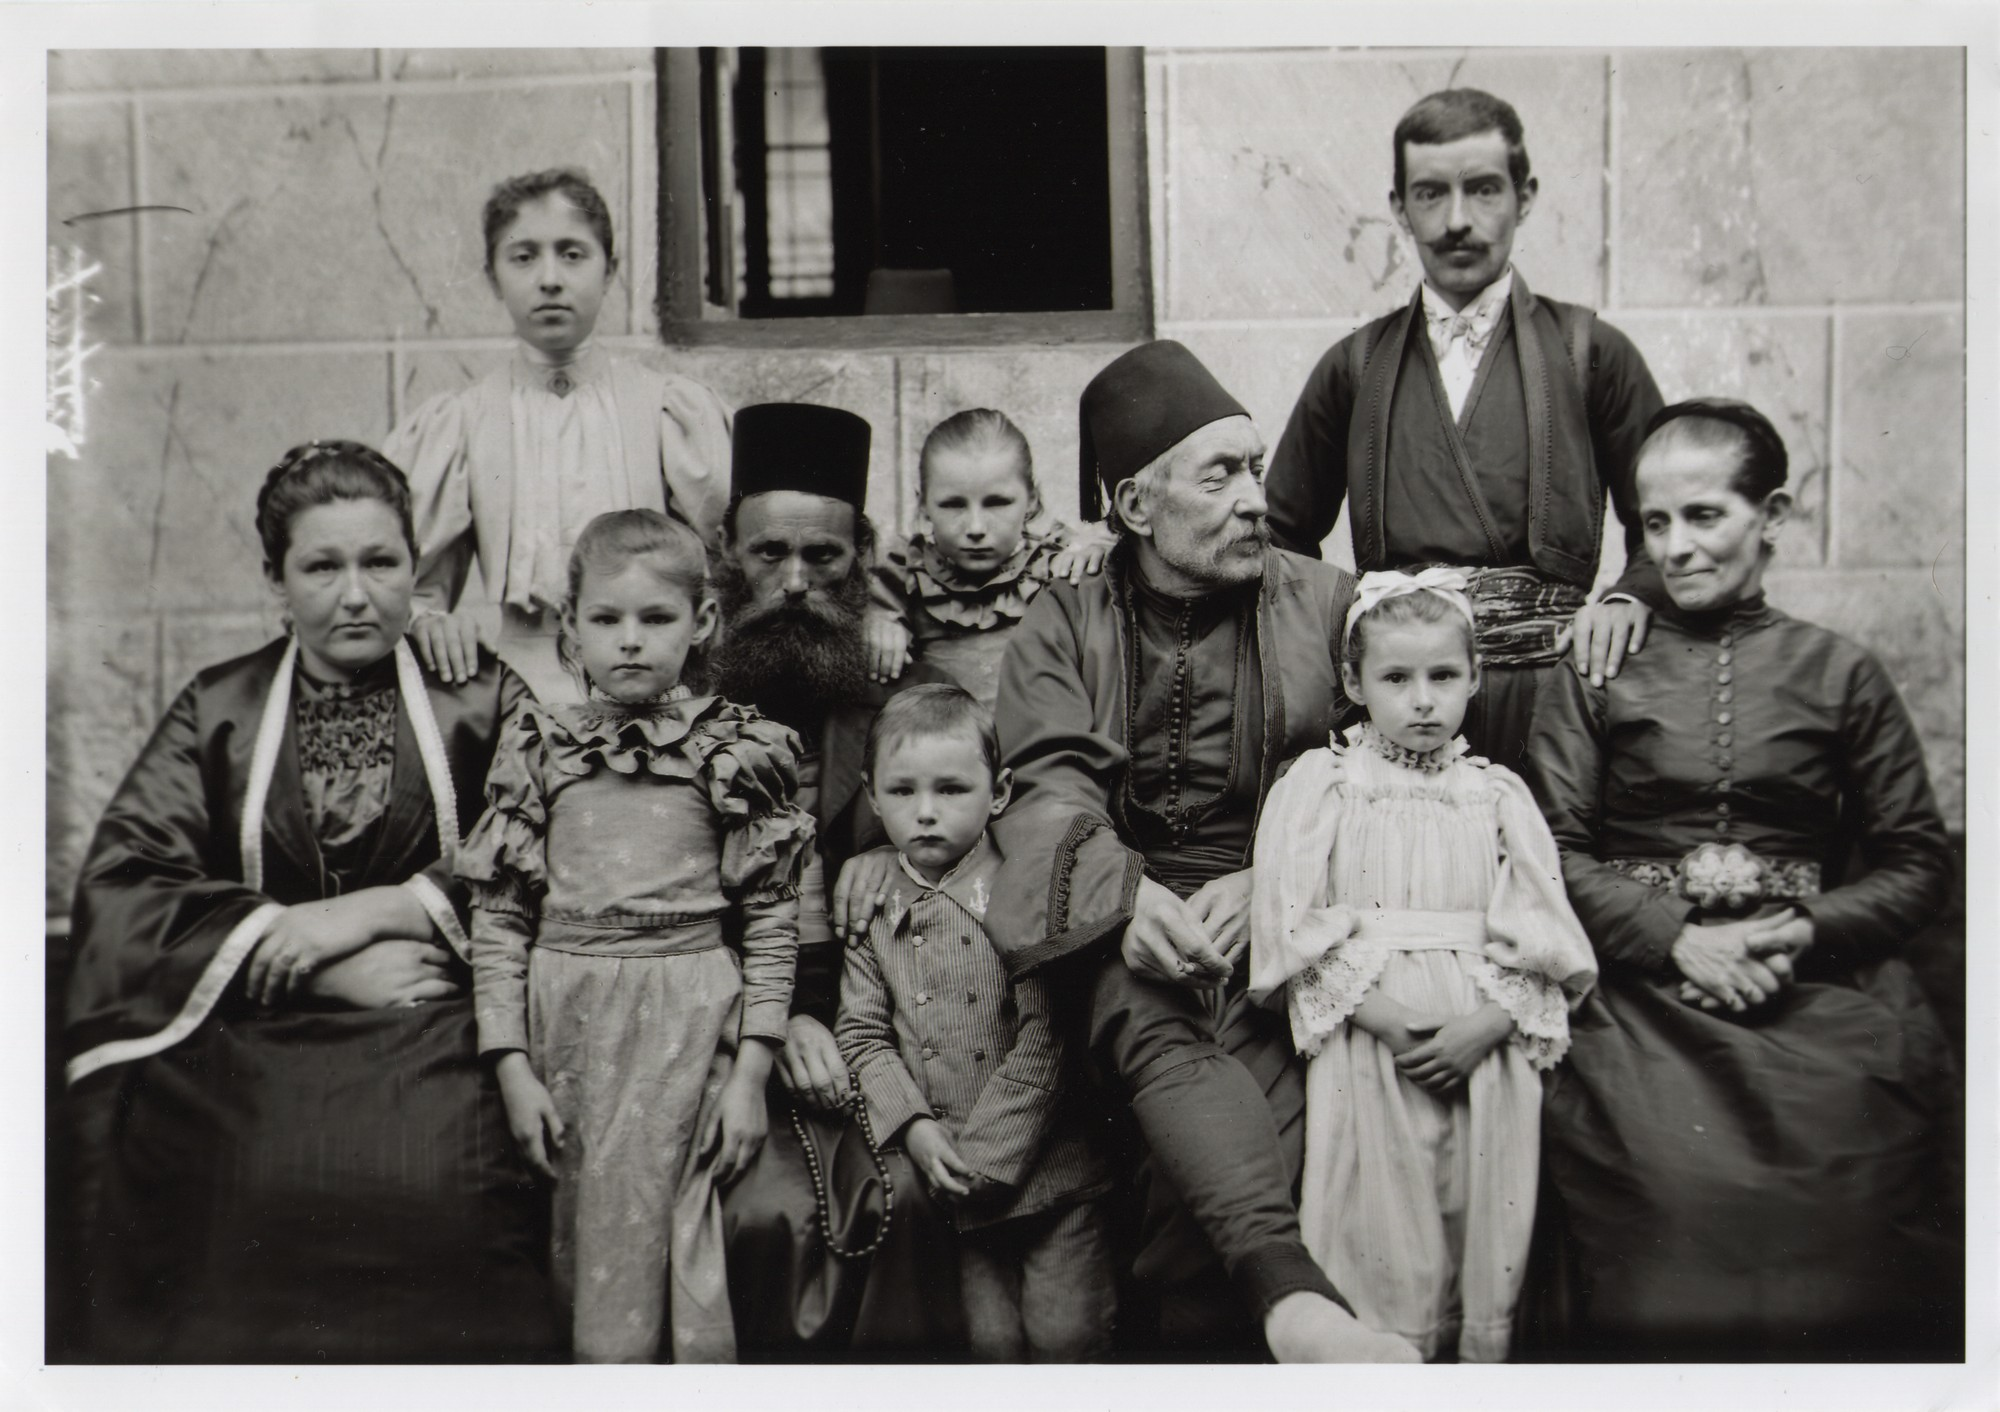 Family portrait, © The National Museum of Bosnia and Herzegovina